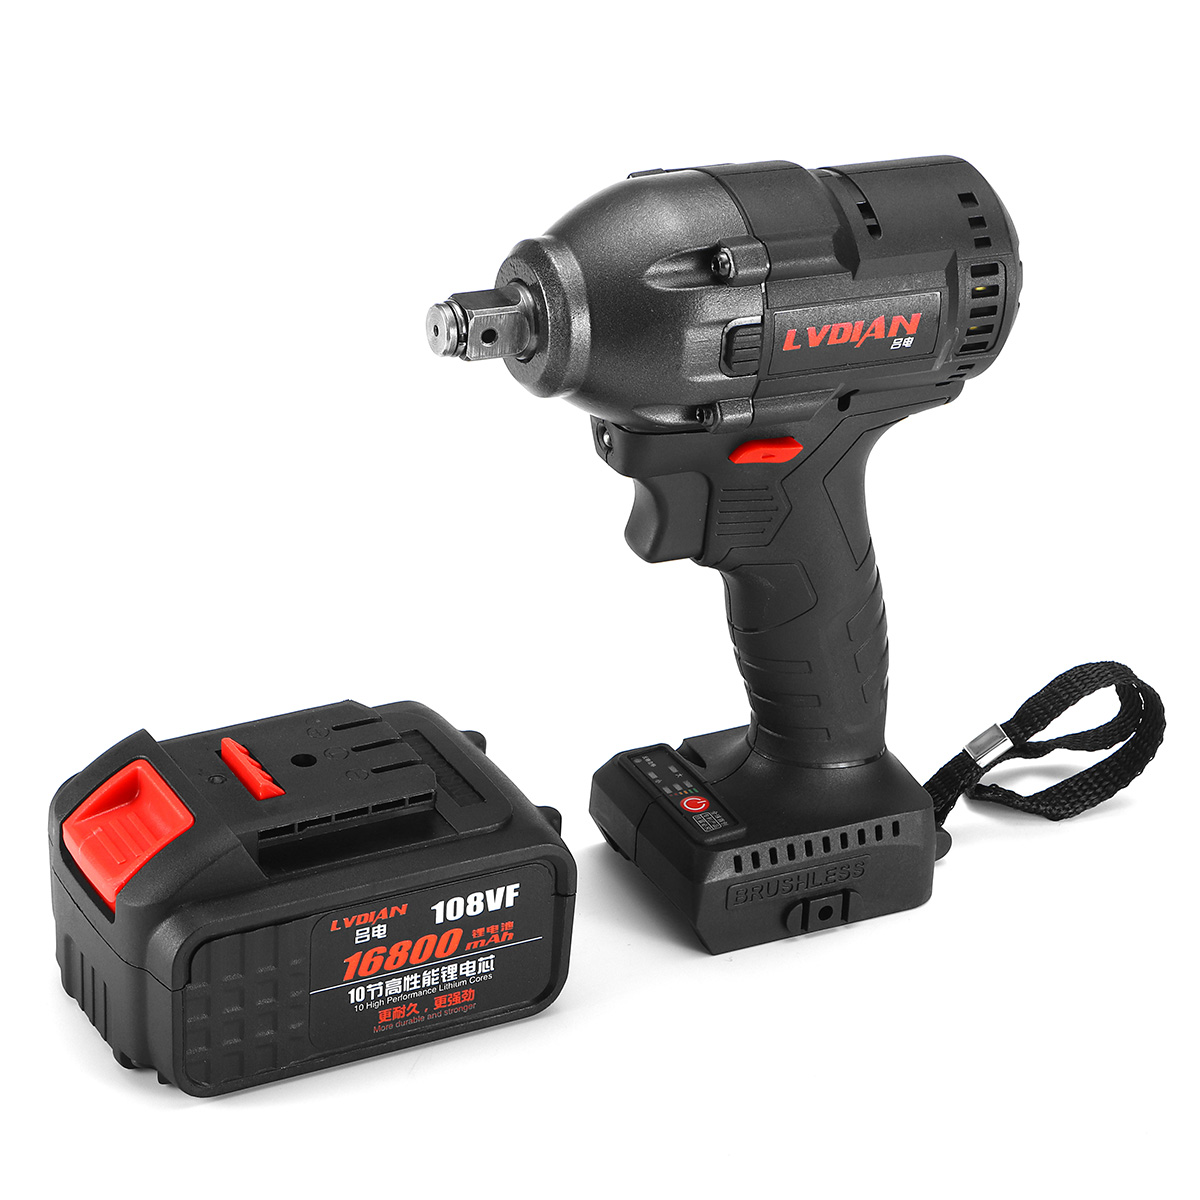 21V Brushless Electric Wrench Cordless Impact Power Wrench Rechargeable Lithium Ion Battery 330Nm Torque 3400 rpm Hand Drill Electric Wrenches    - AliExpress